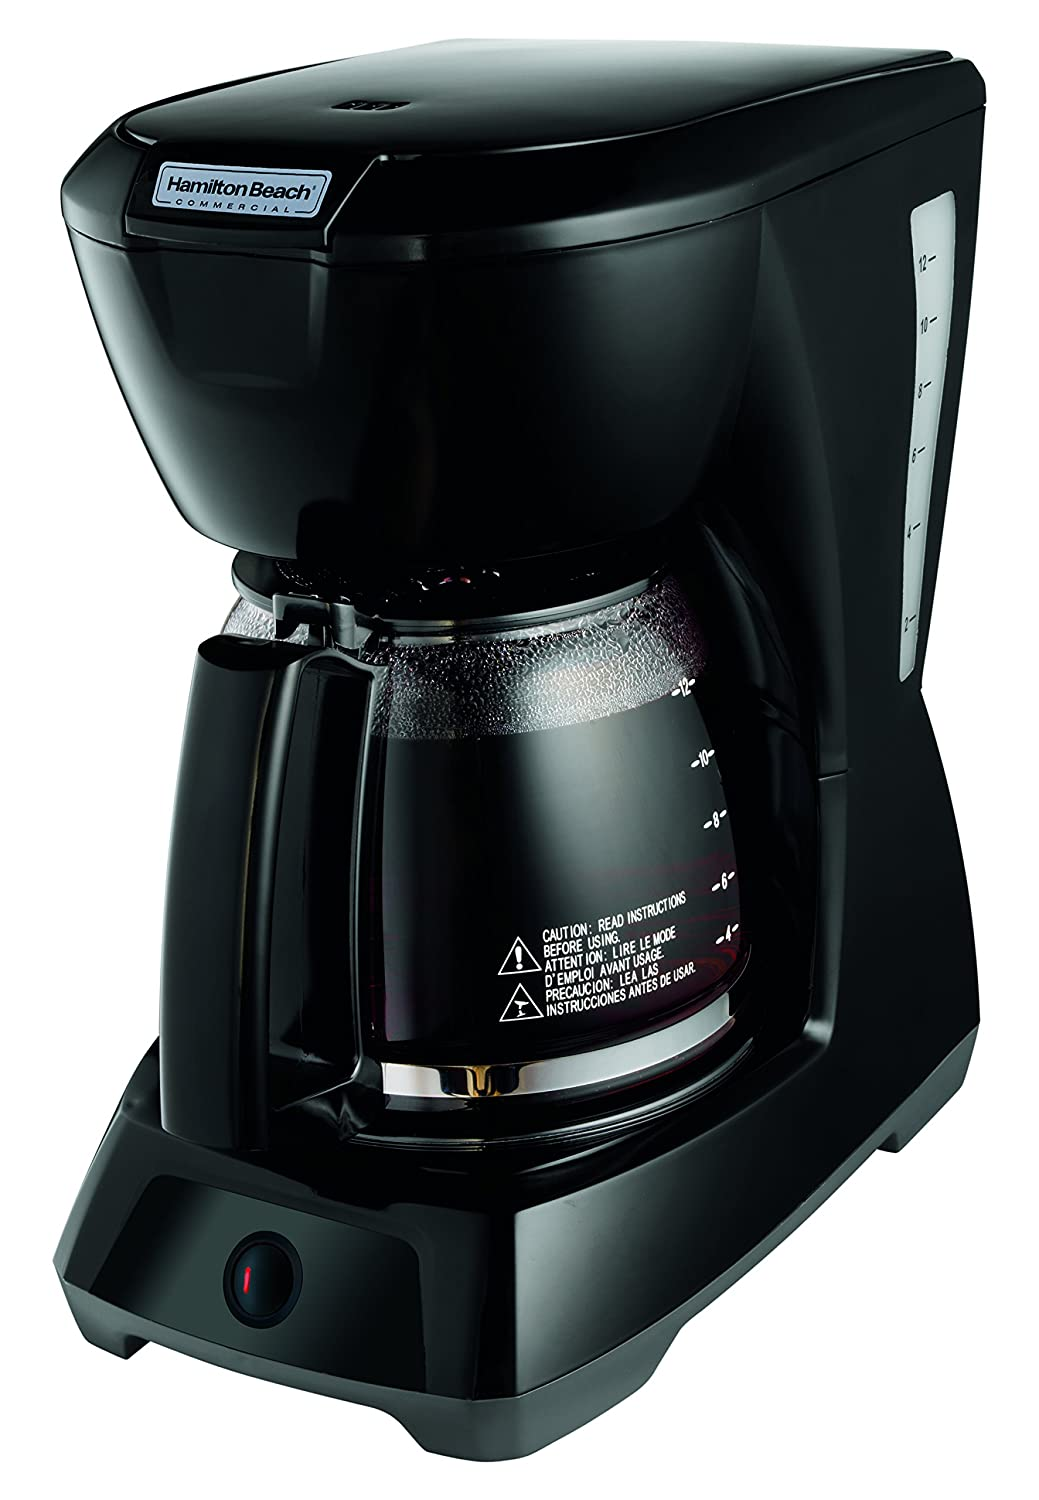 Hamilton Beach Commercial HDC1200 12 Cup Coffeemaker Black with Glass Carafe | Hospitality Rated